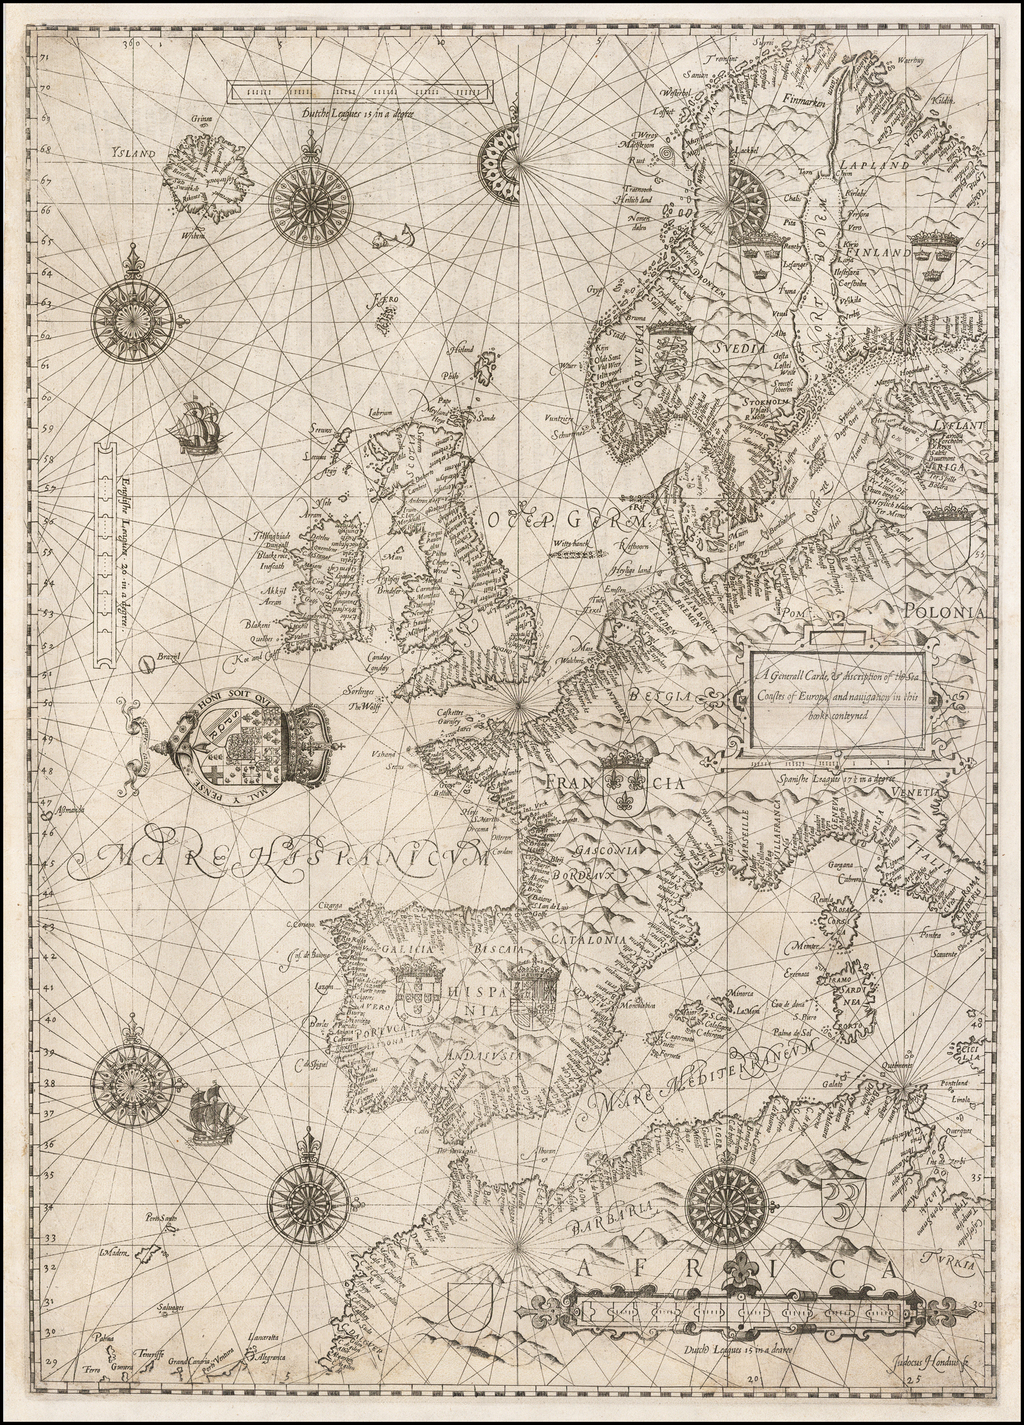 A Generall Carde, & discription of the Sea Coastes of Europa, and navigation in this booke conteyned By Lucas Janszoon Waghenaer